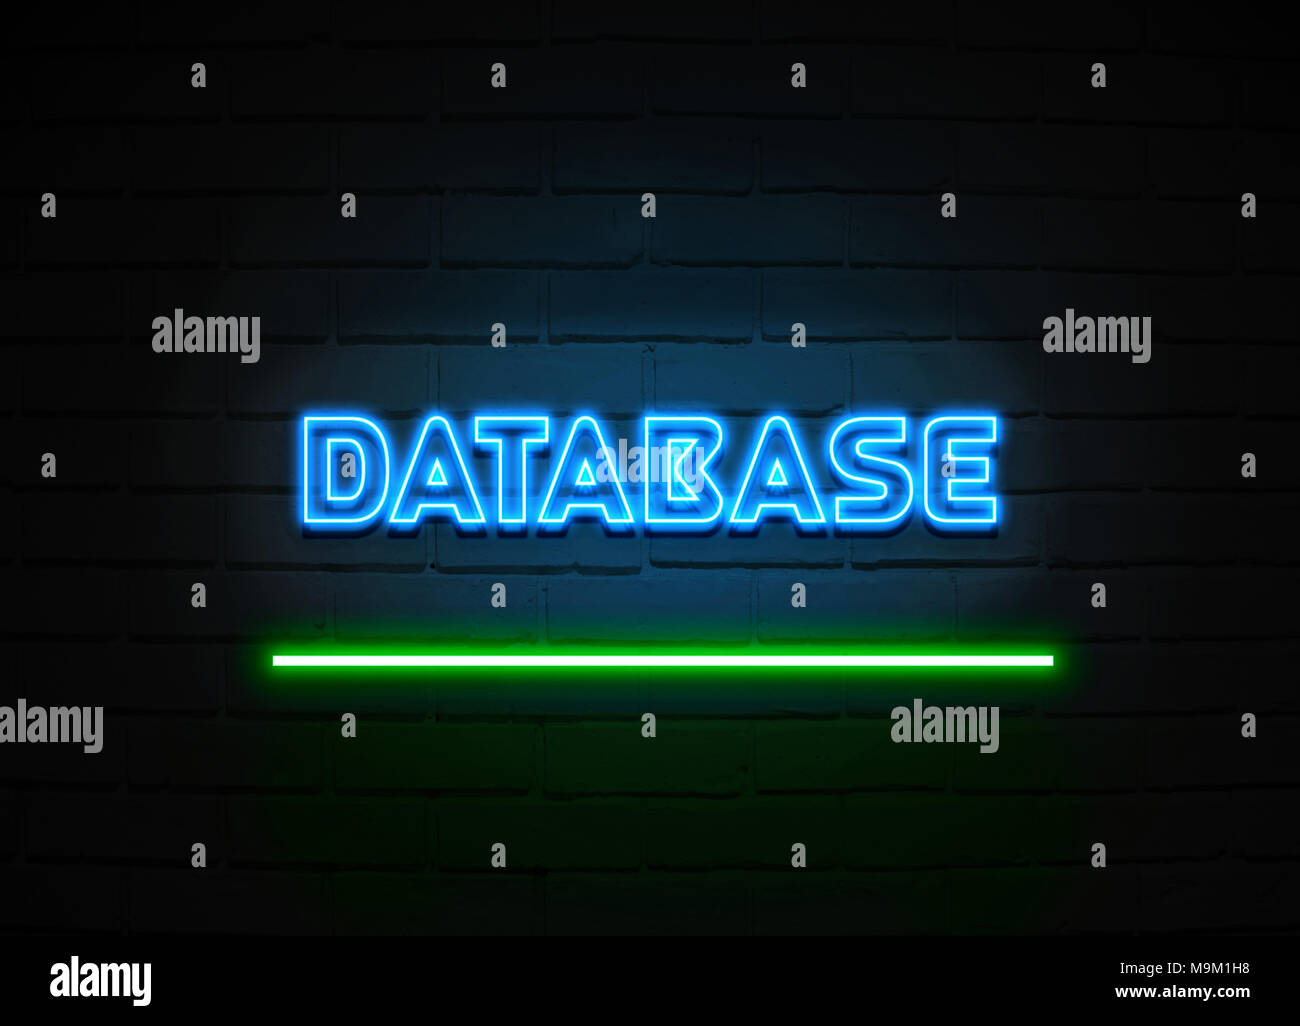 Database Neon Sign Glowing Neon Sign On Brickwall Wall 3d Rendered Royalty Free Stock Illustration Stock Photo Alamy